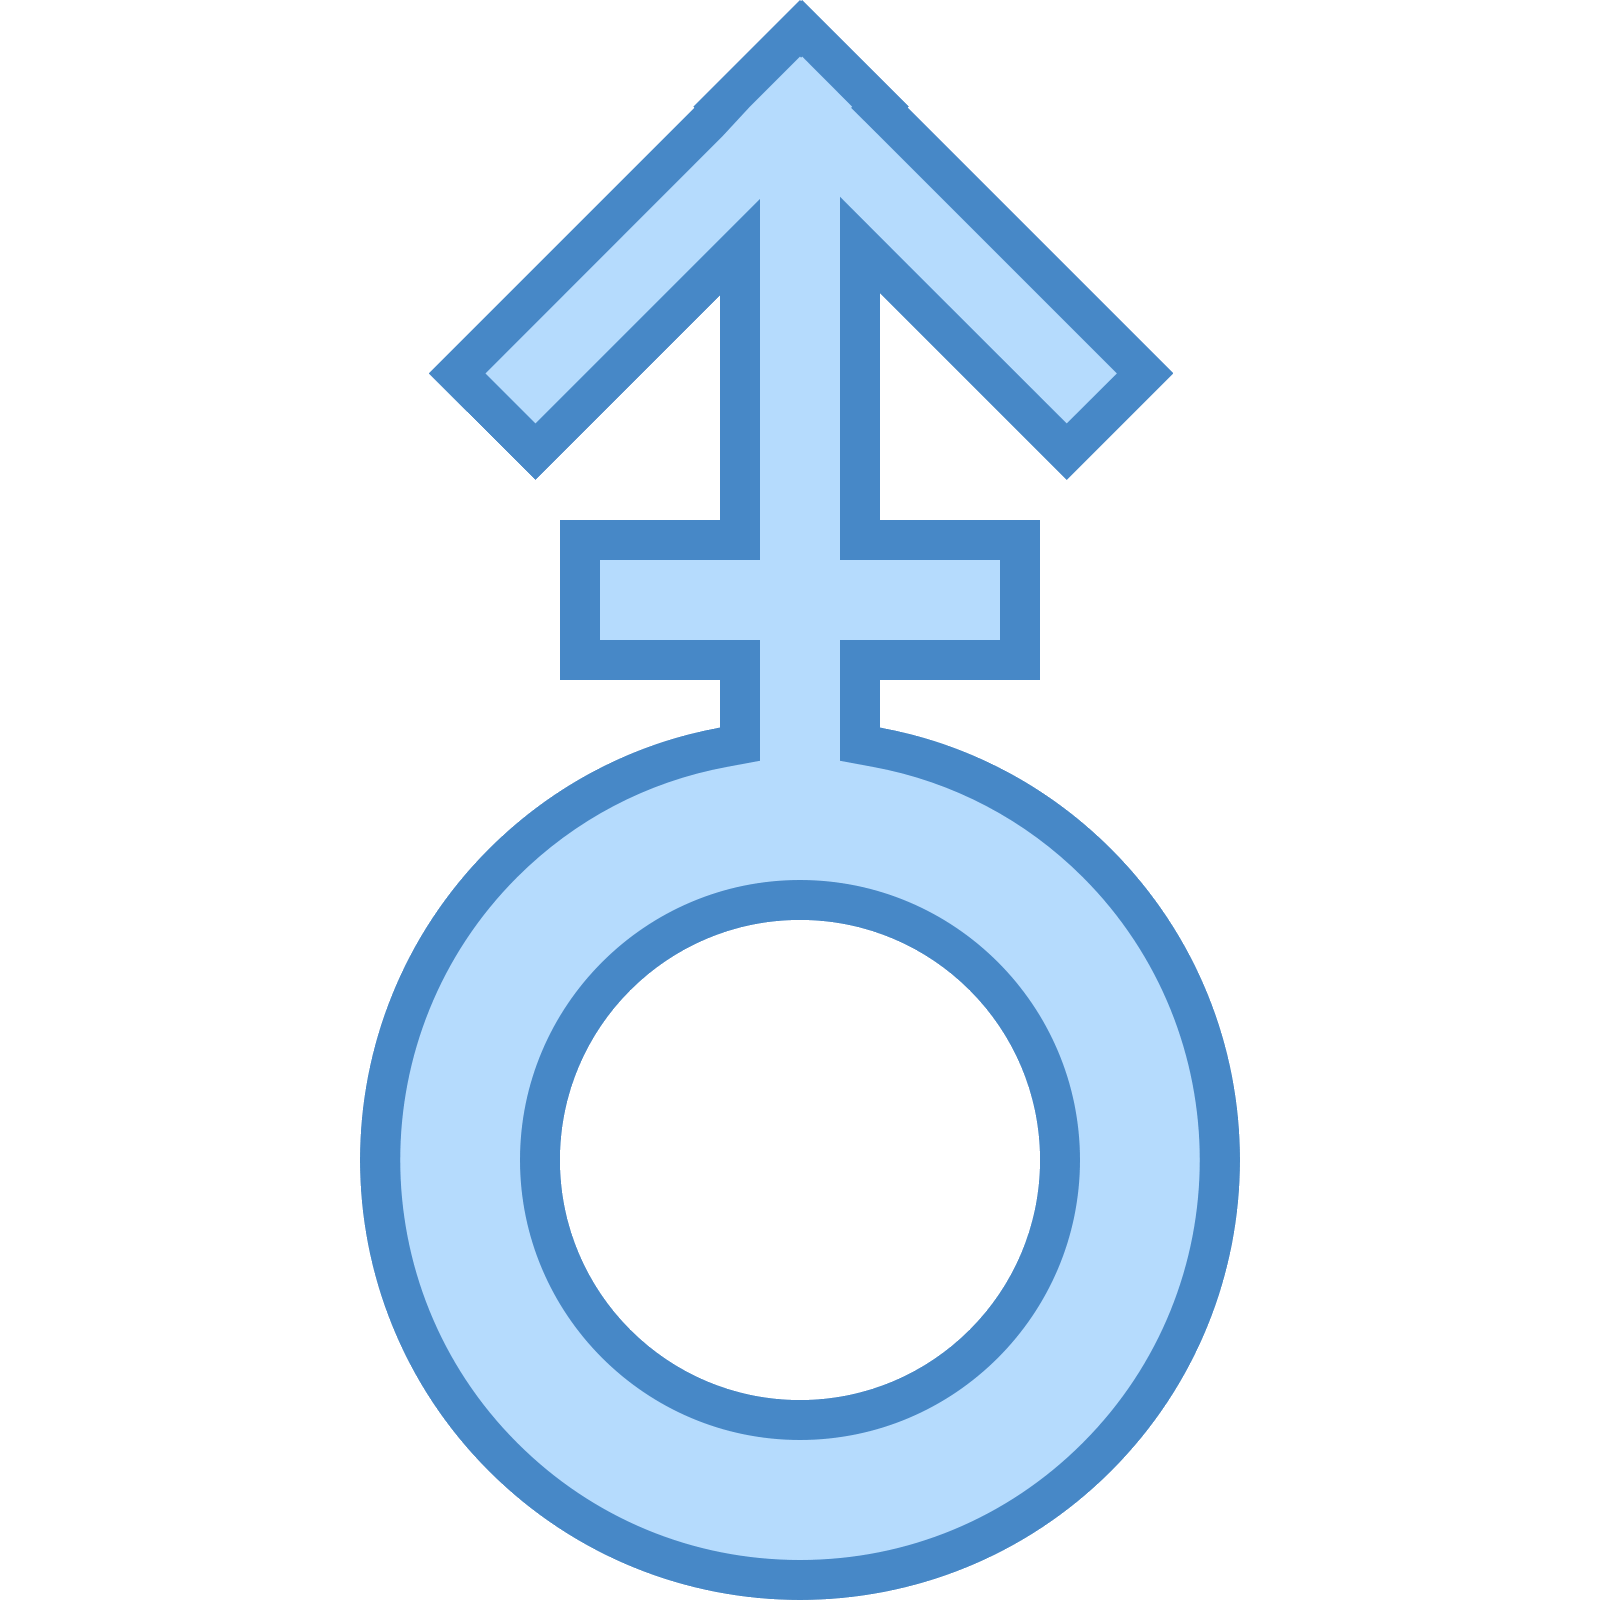 Male vector infographic. Stroke v icon free